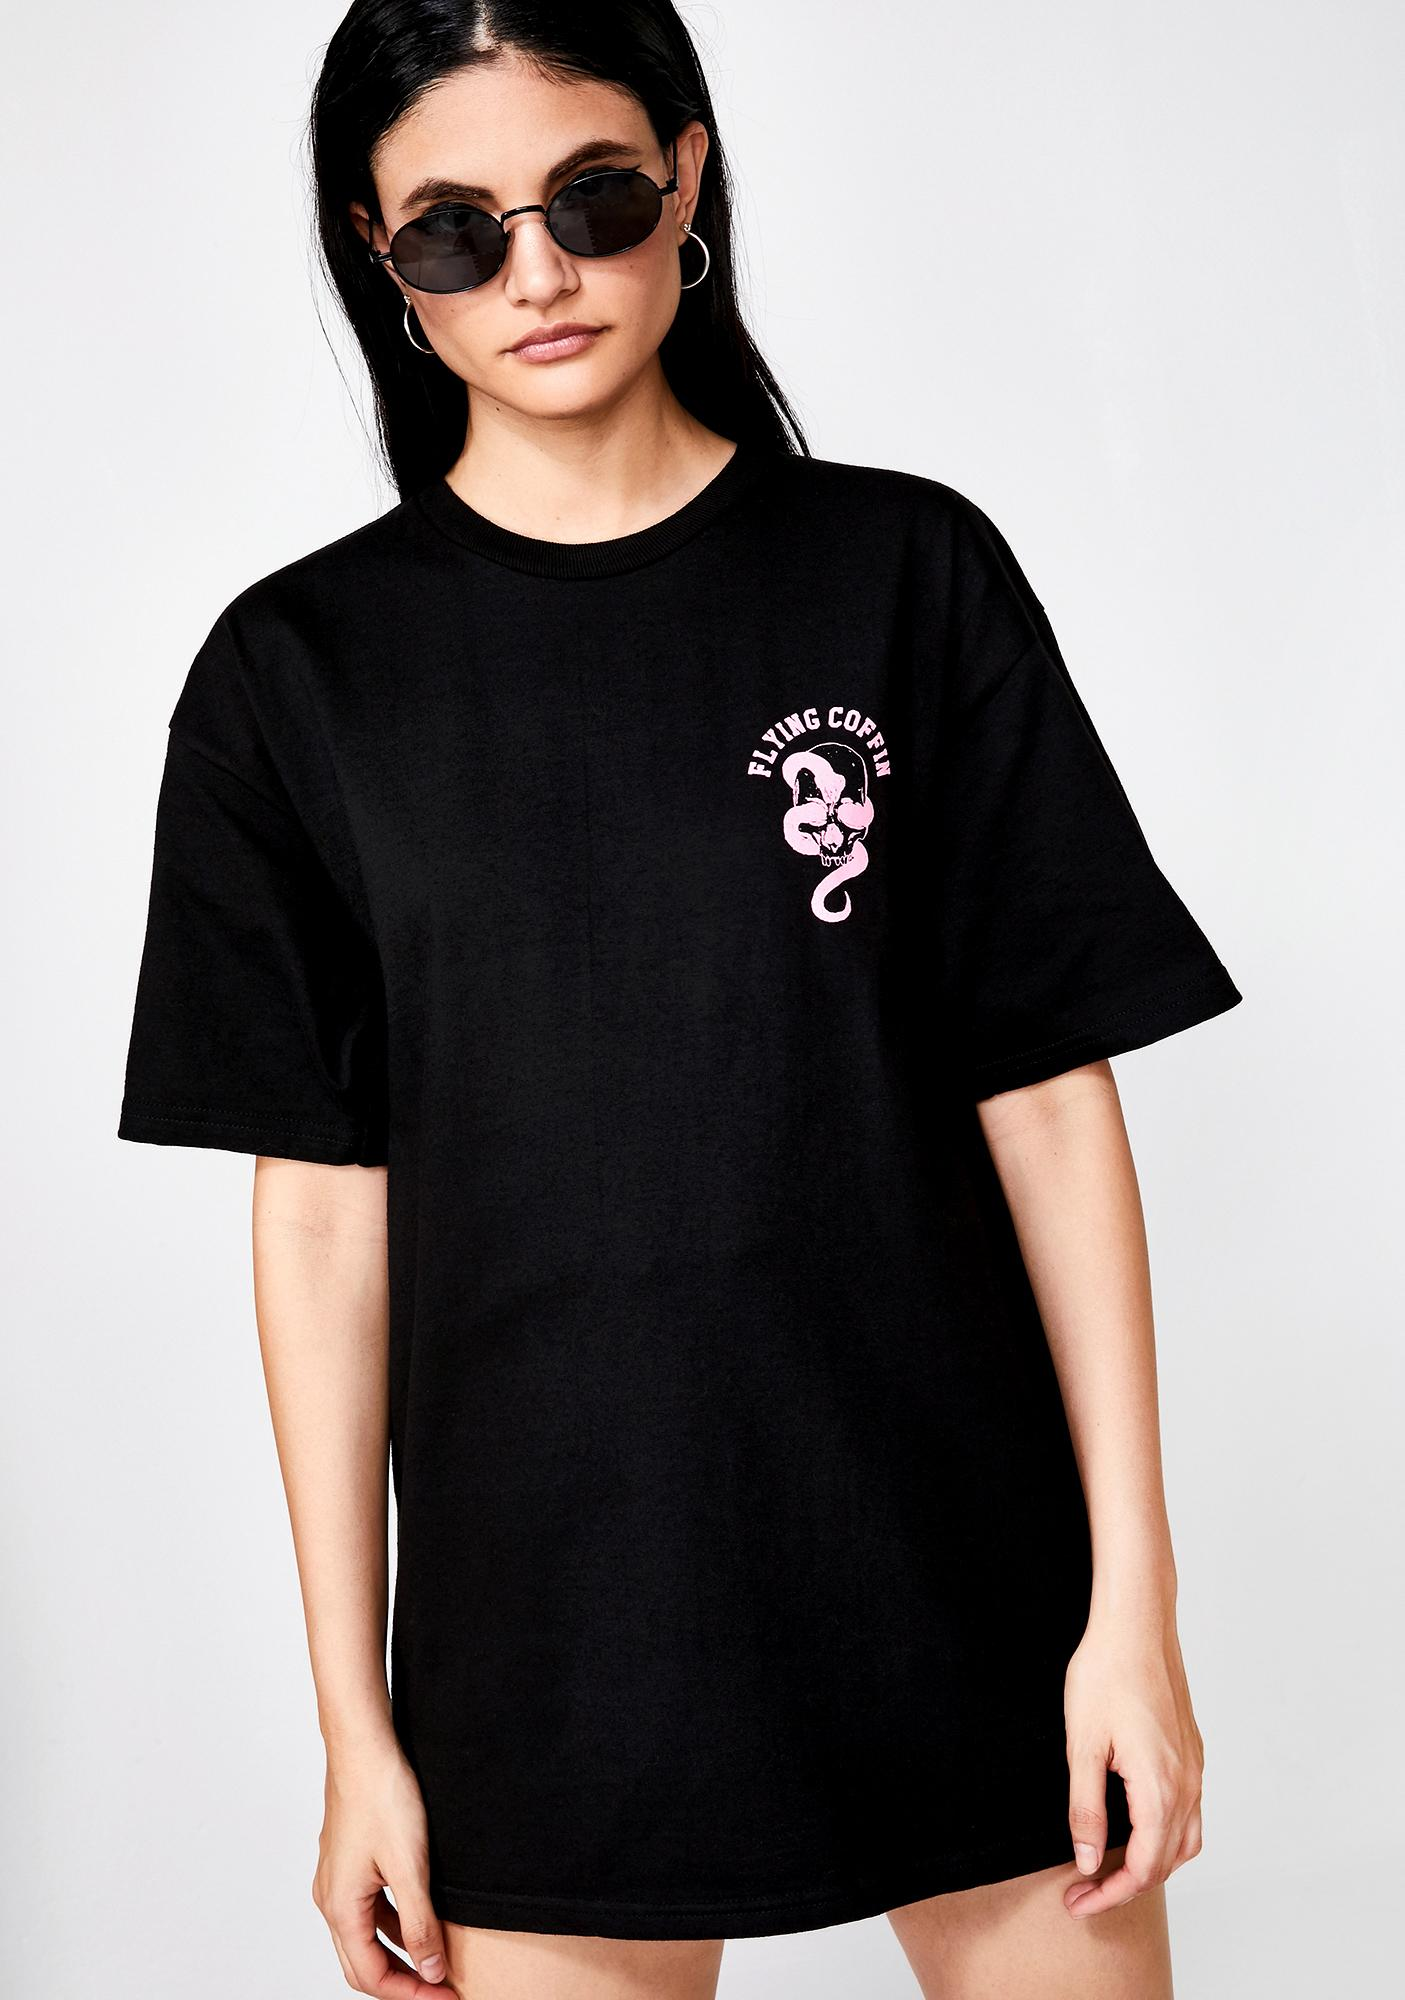 Flying Coffin Just Death Tee - BLACK